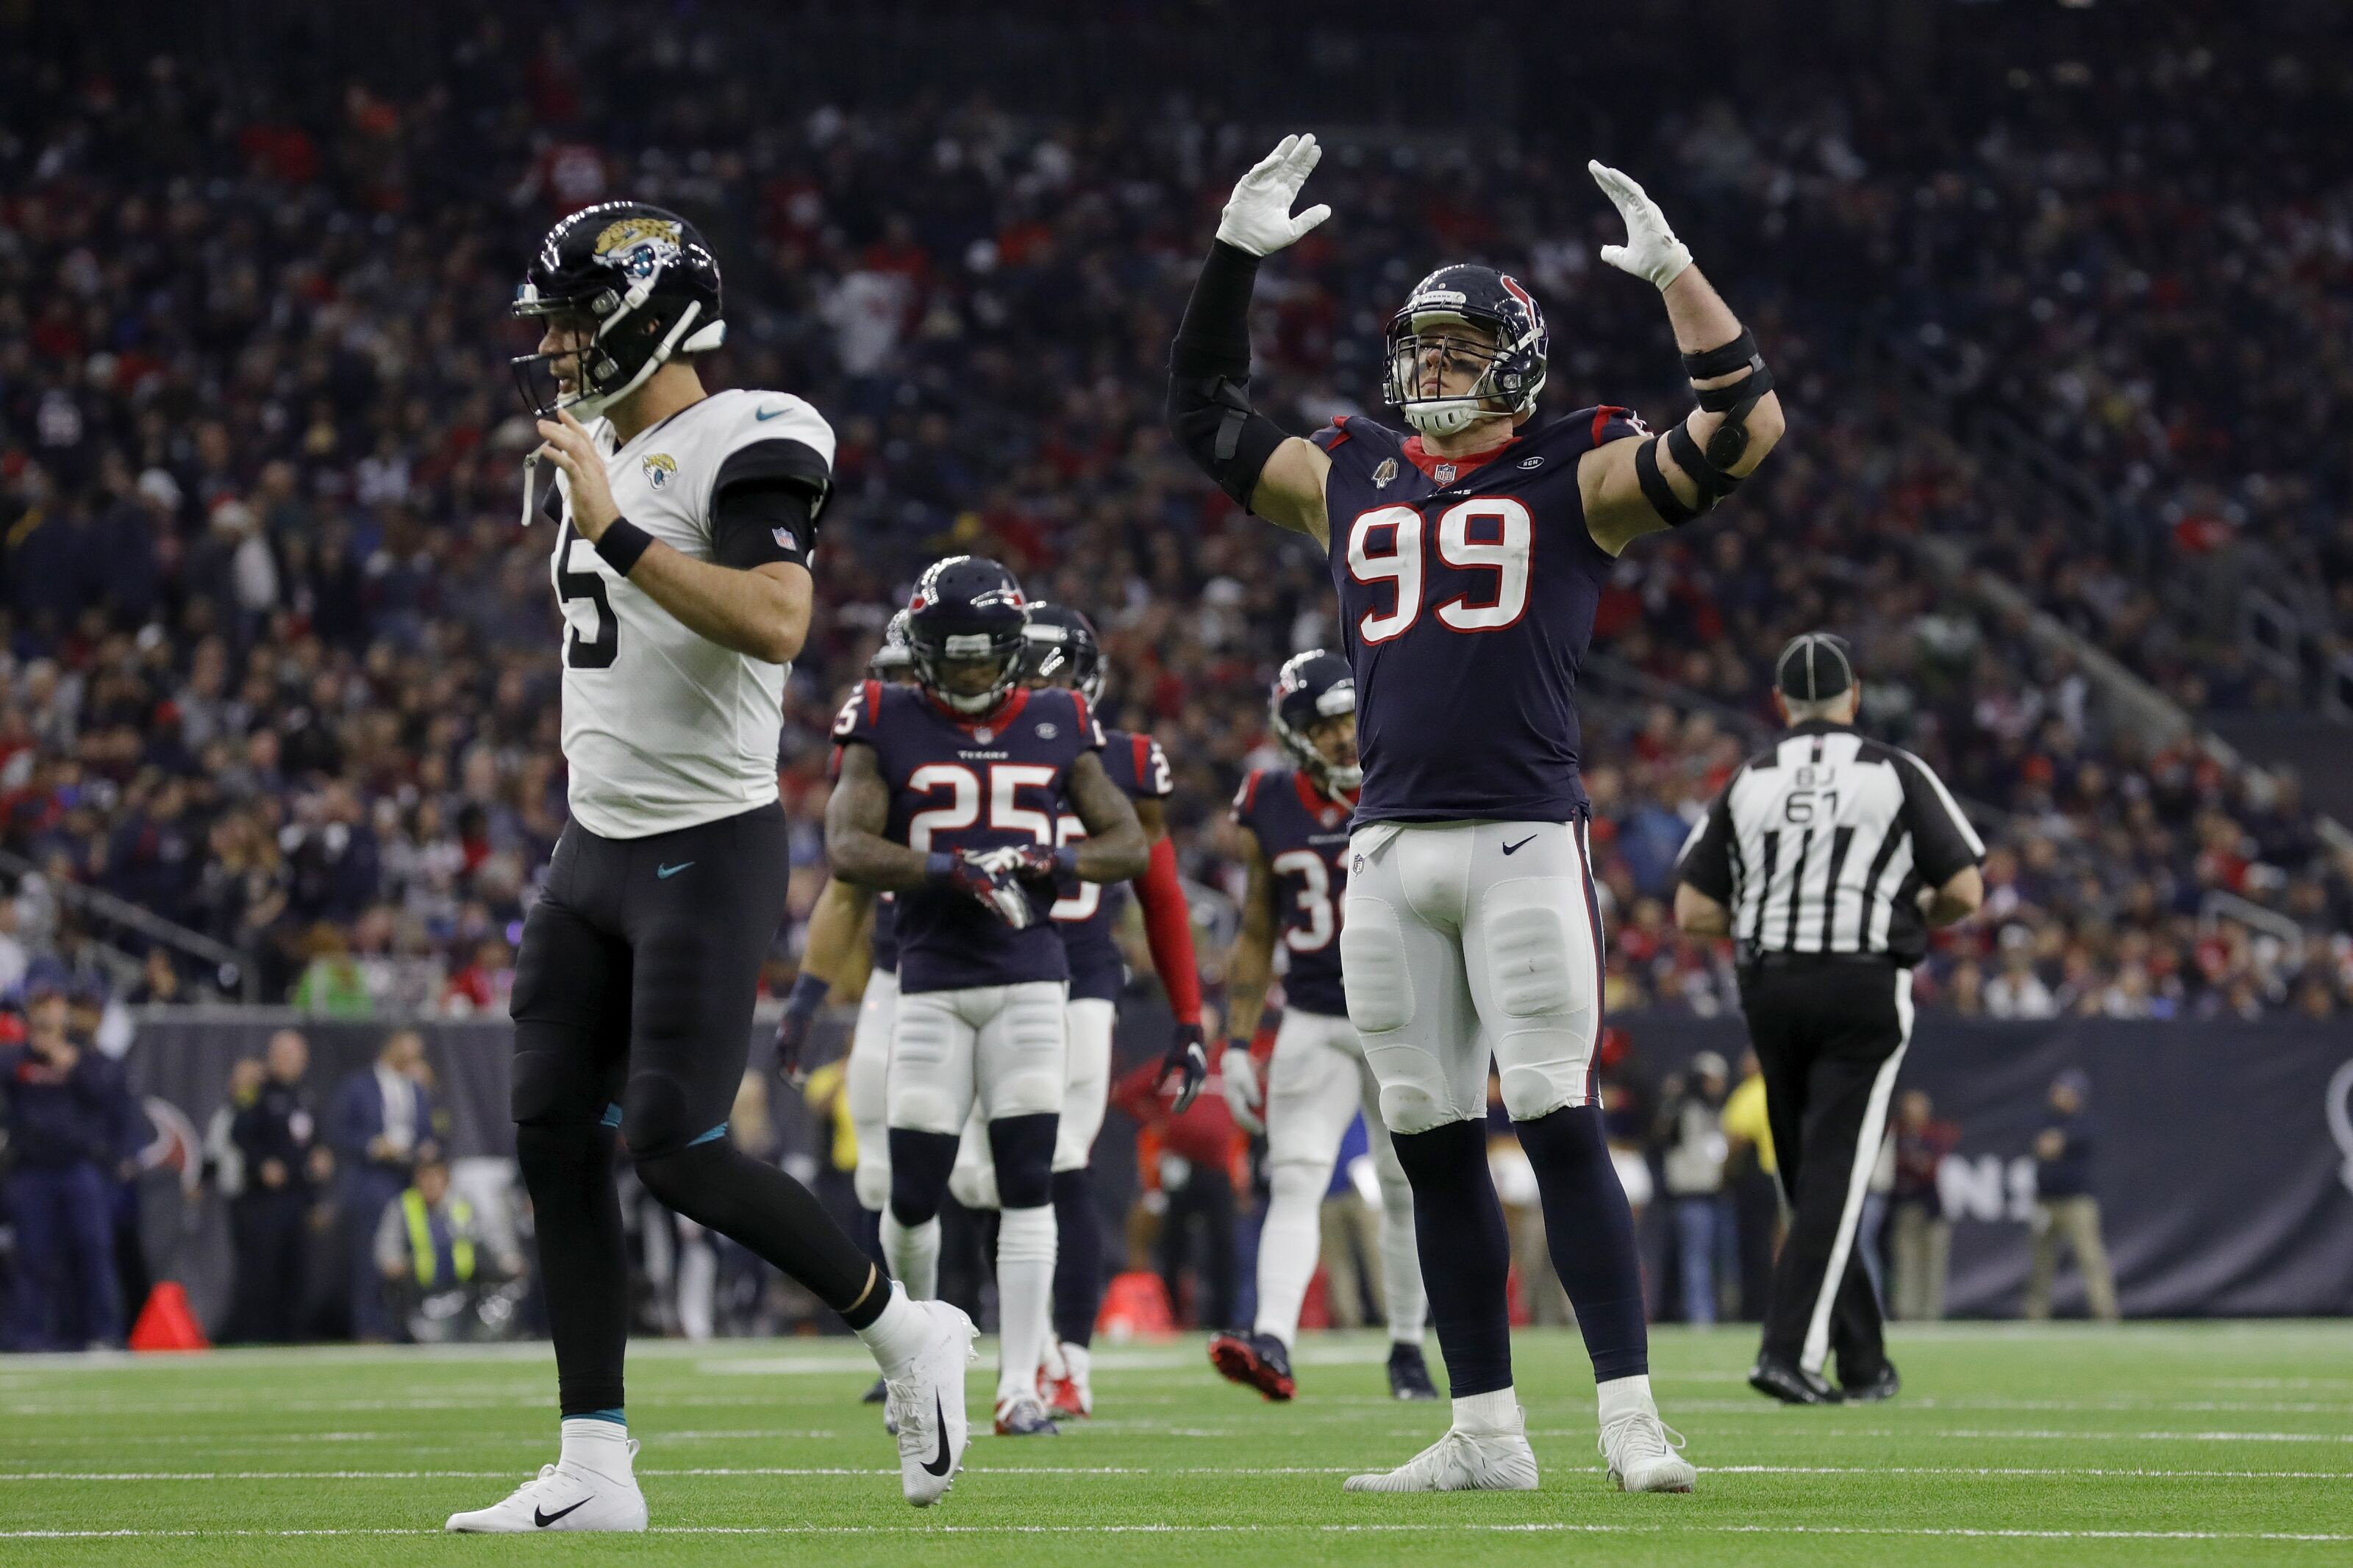 Houston Texans ranked 2nd best run defense by Pro Football Focus